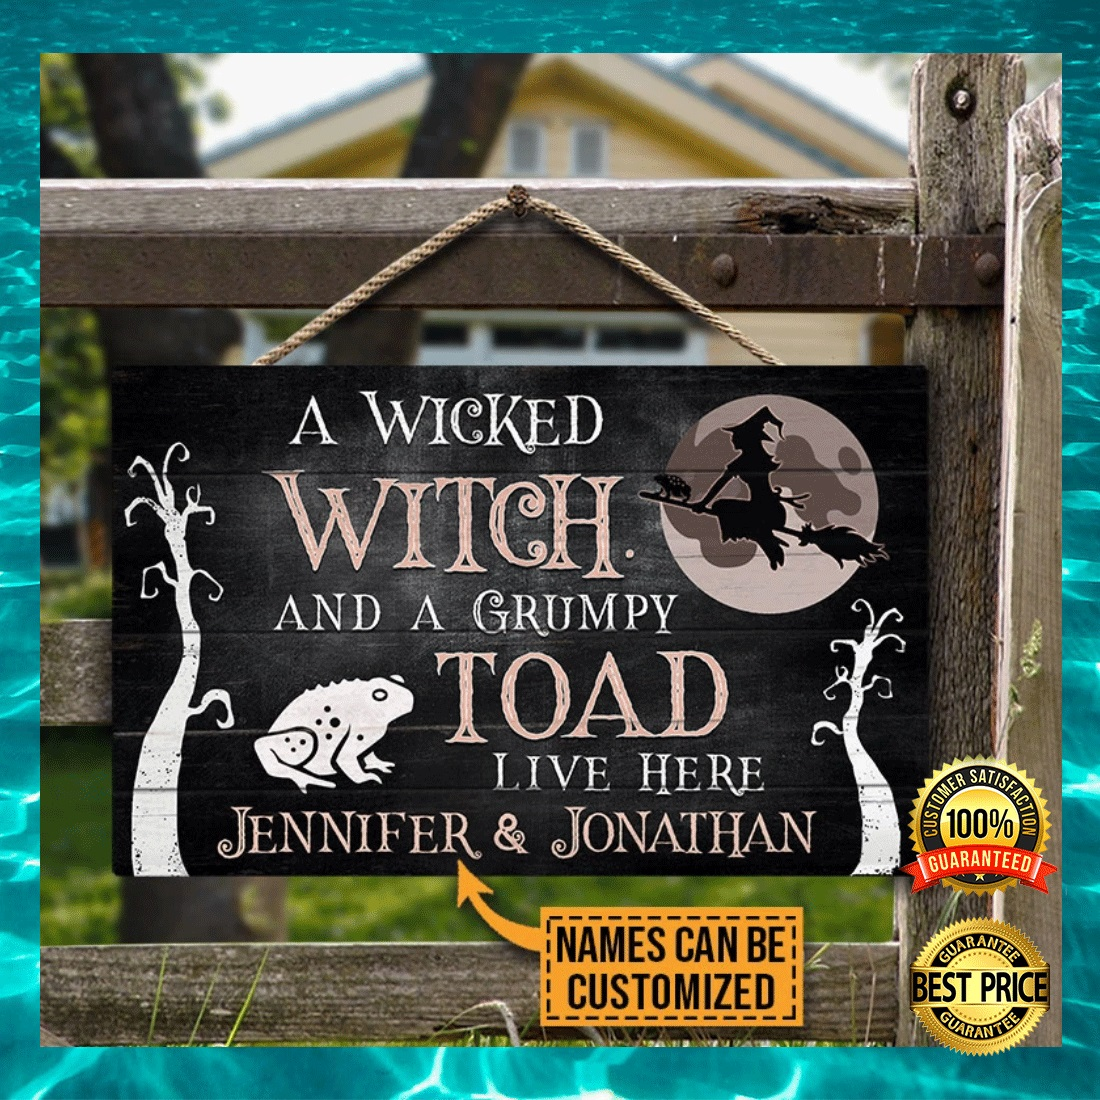 PERSONALIZED A WICKED WITCH AND A GRUMPY TOAD LIVE HERE DOOR SIGN 6